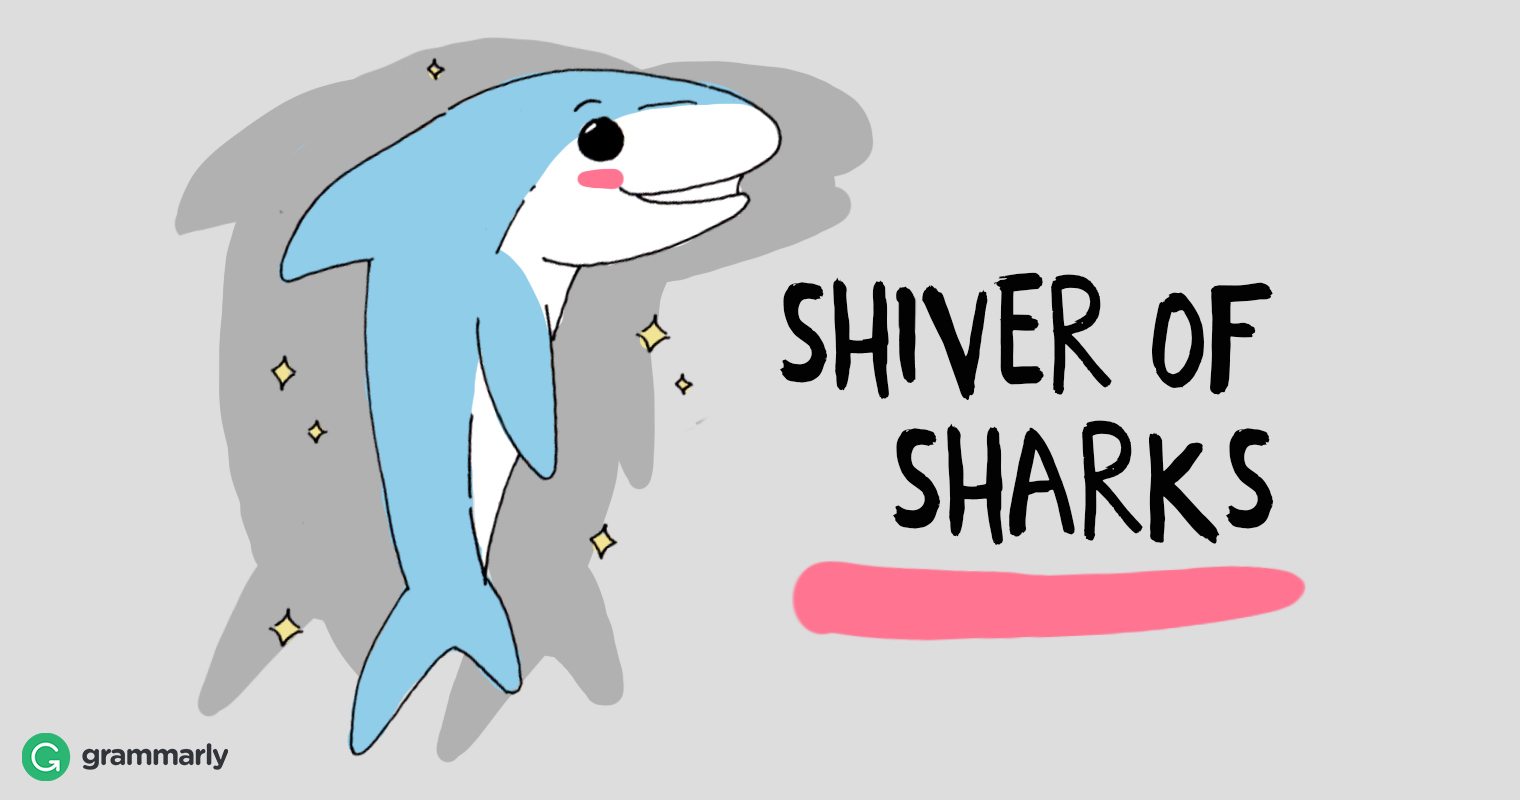 Collective of sharks is a shiver.